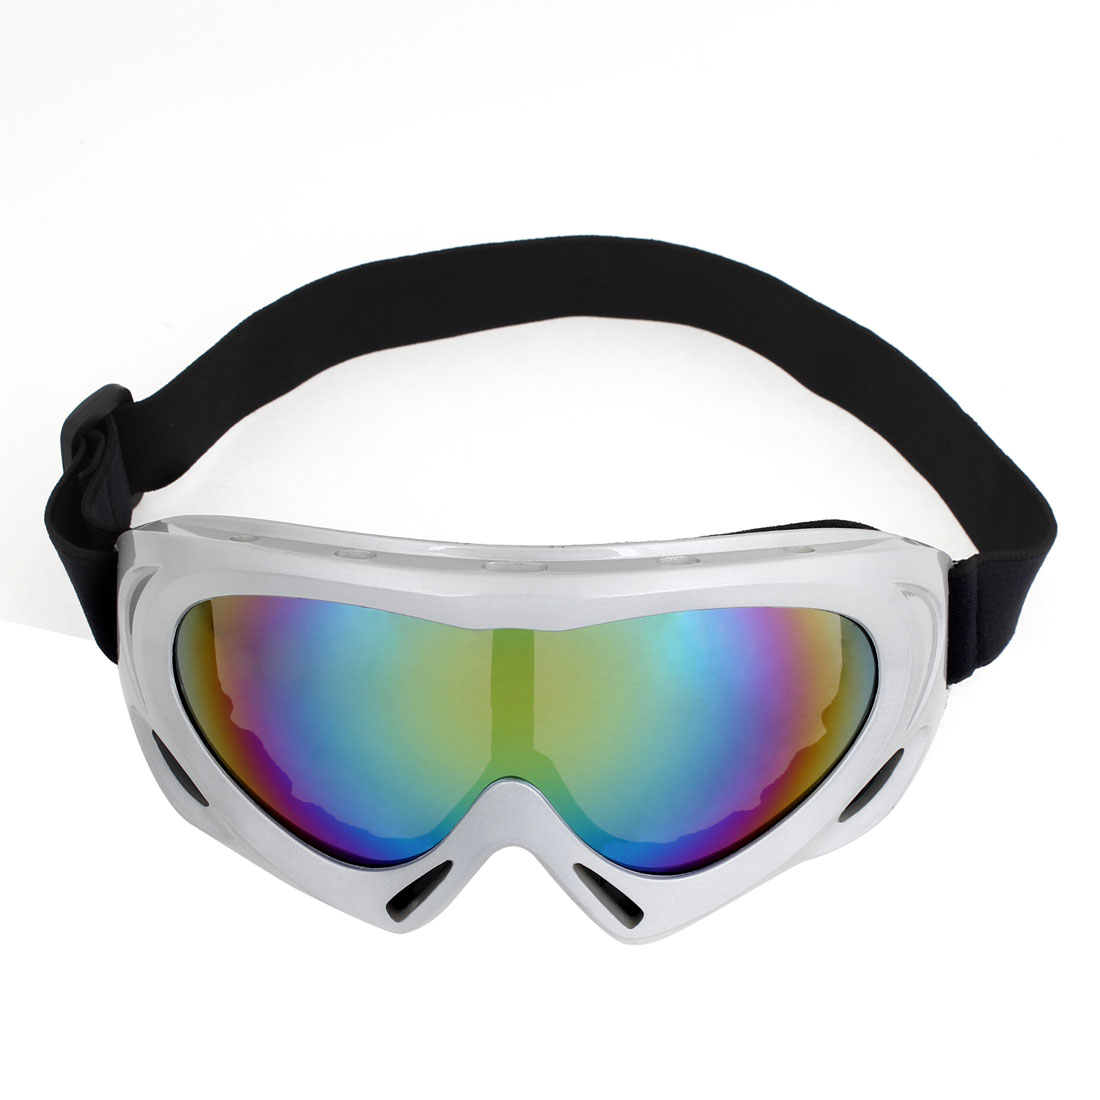 Unique Bargains Winter Sports Snowboard Ski Goggles Windproof Anti-UV Snow Glasses for Men Women by Unique-Bargains